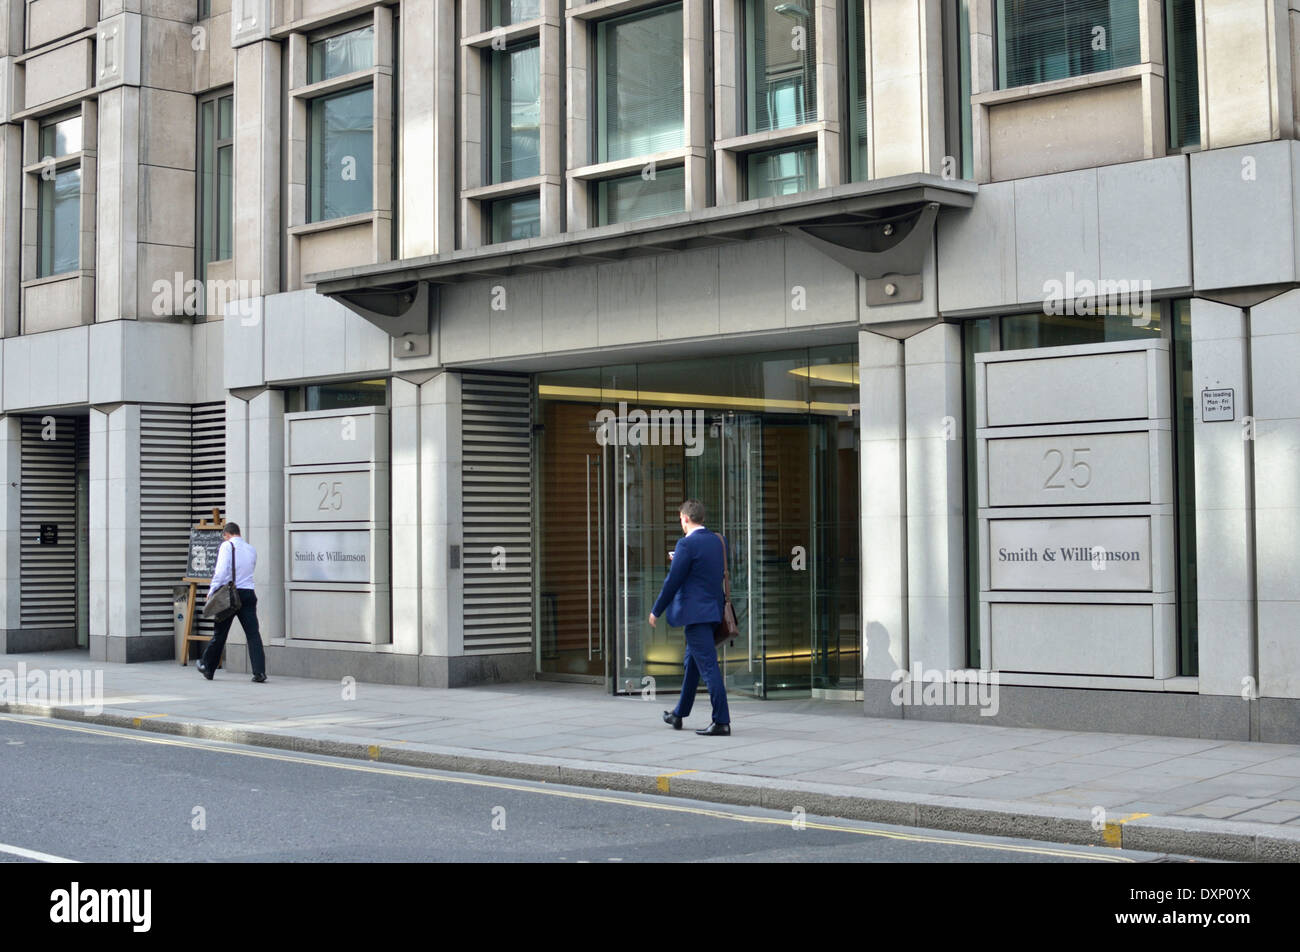 Office building at number 25 Moorgate, London, UK. - Stock Image